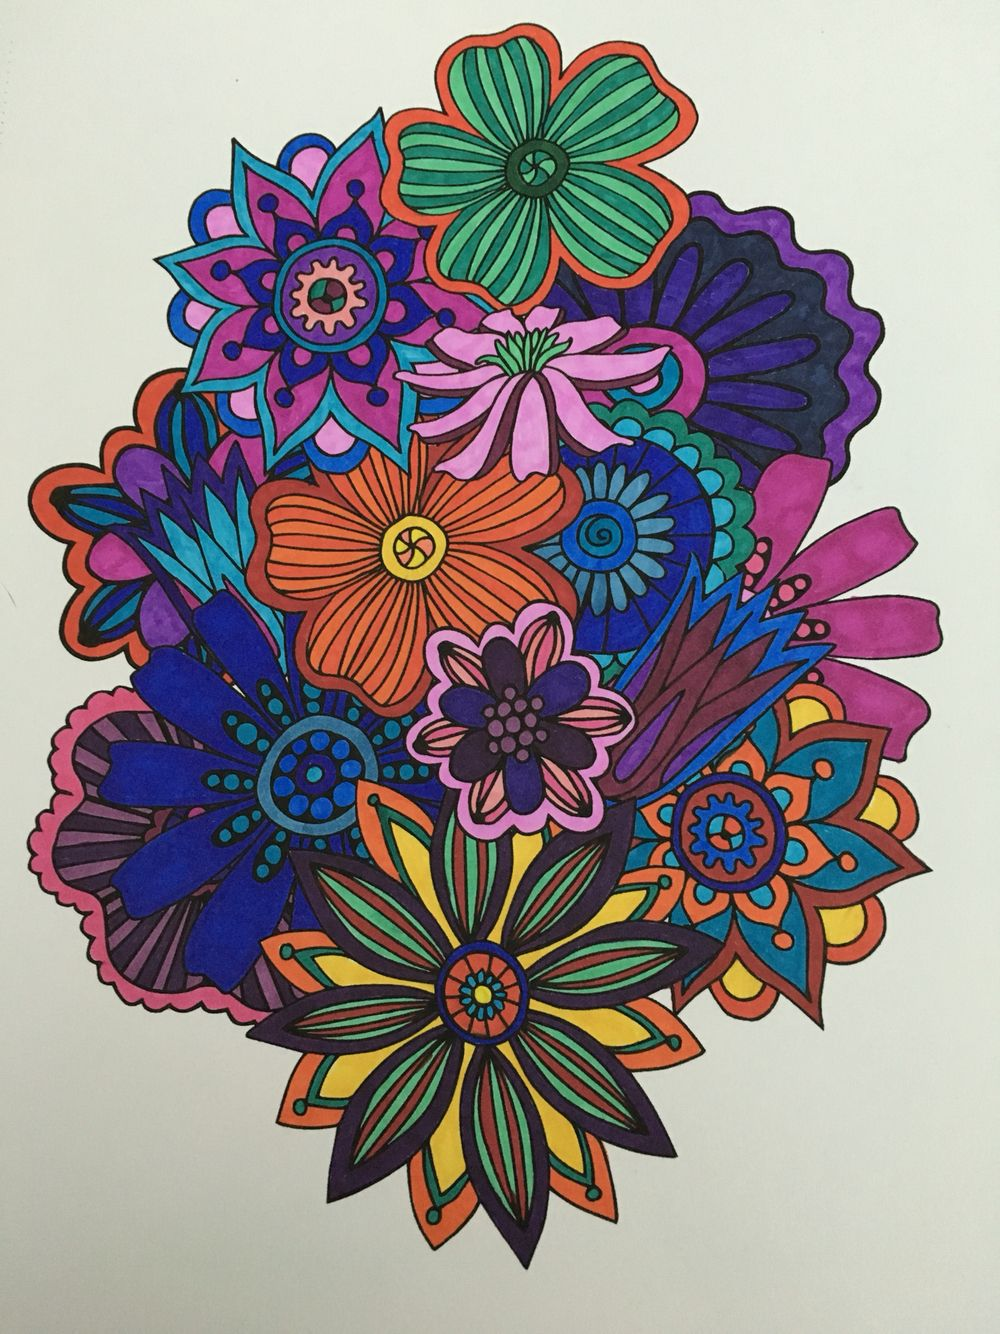 920 Coloring Pages For Adults Walmart , Free HD Download